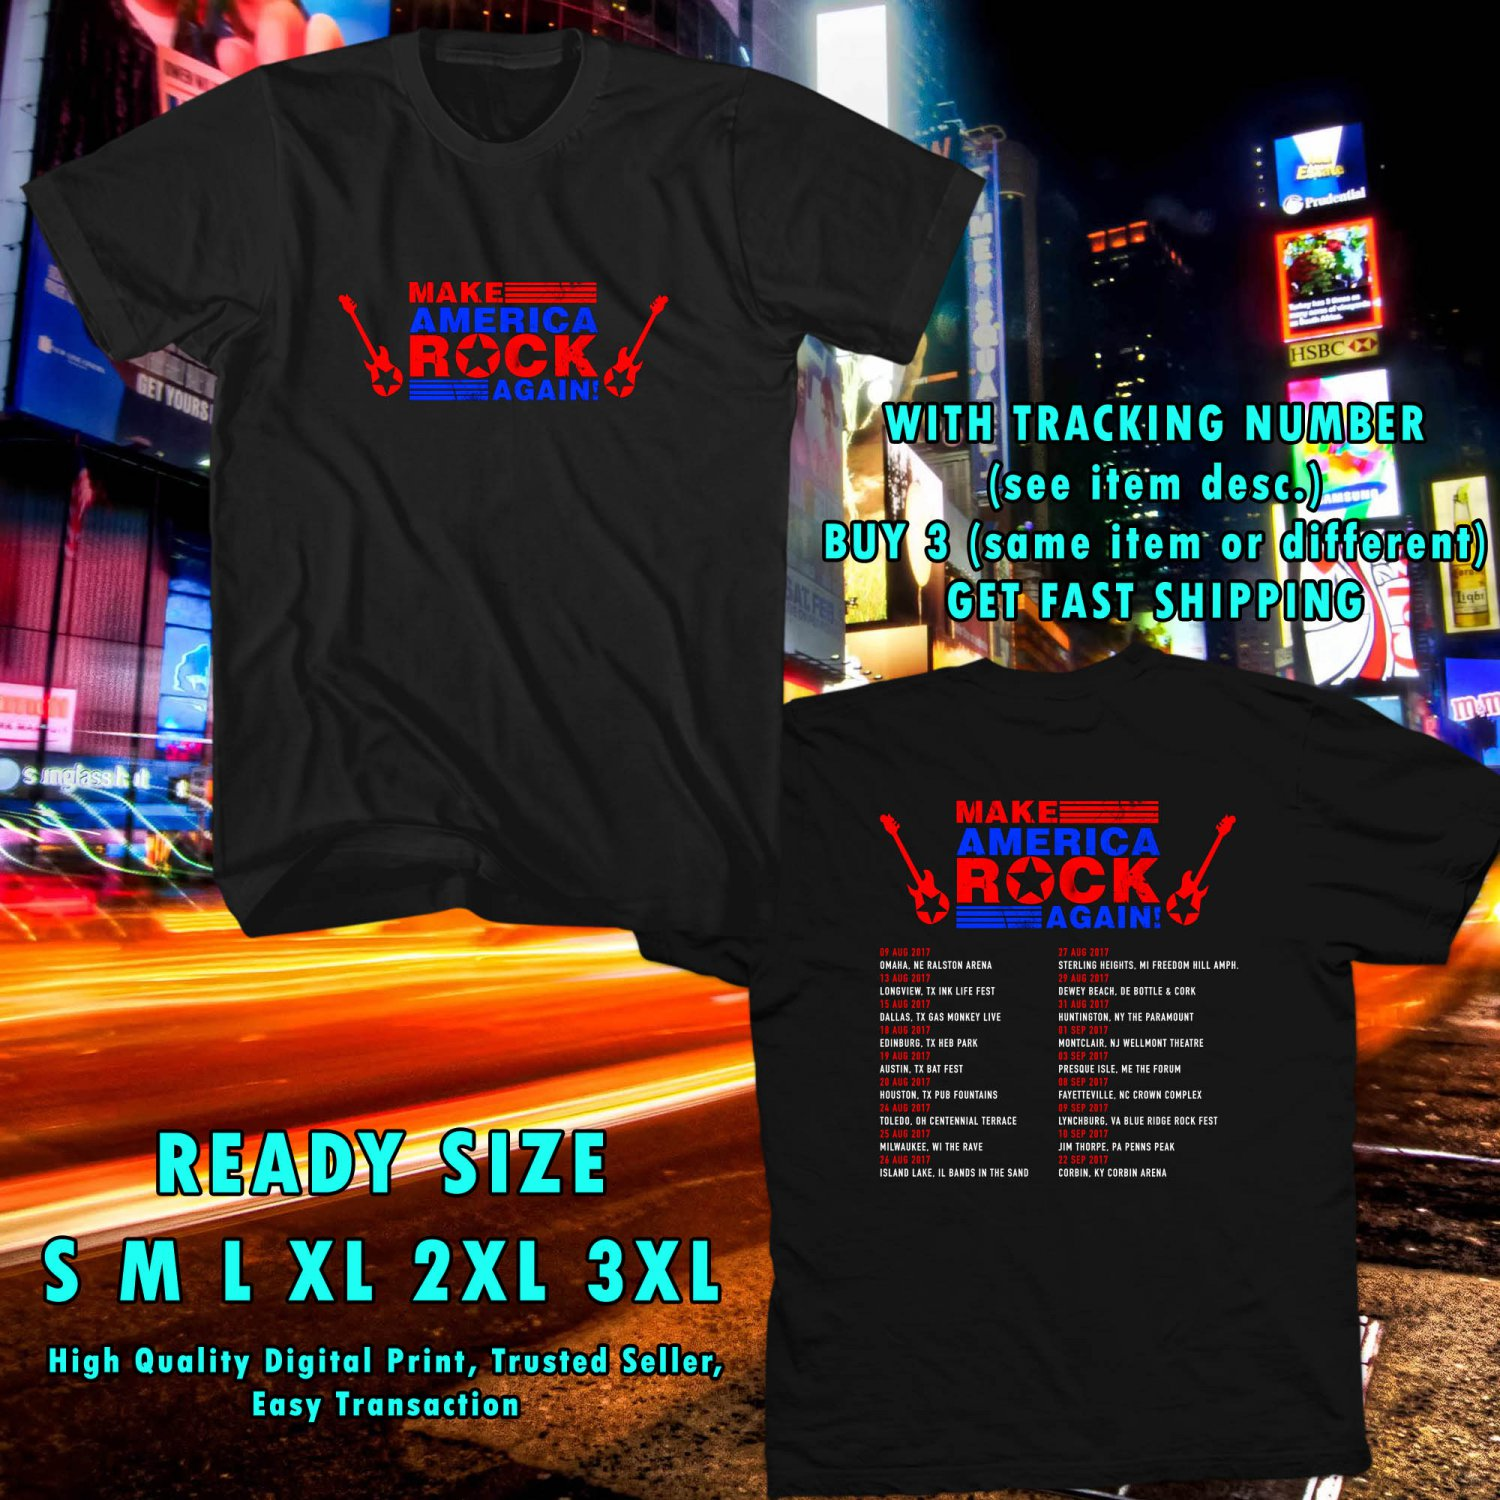 HITS MAKE AMERICA ROCK AGAIN TOUR 2017 BLACK TEE'S 2SIDE ASTR 887